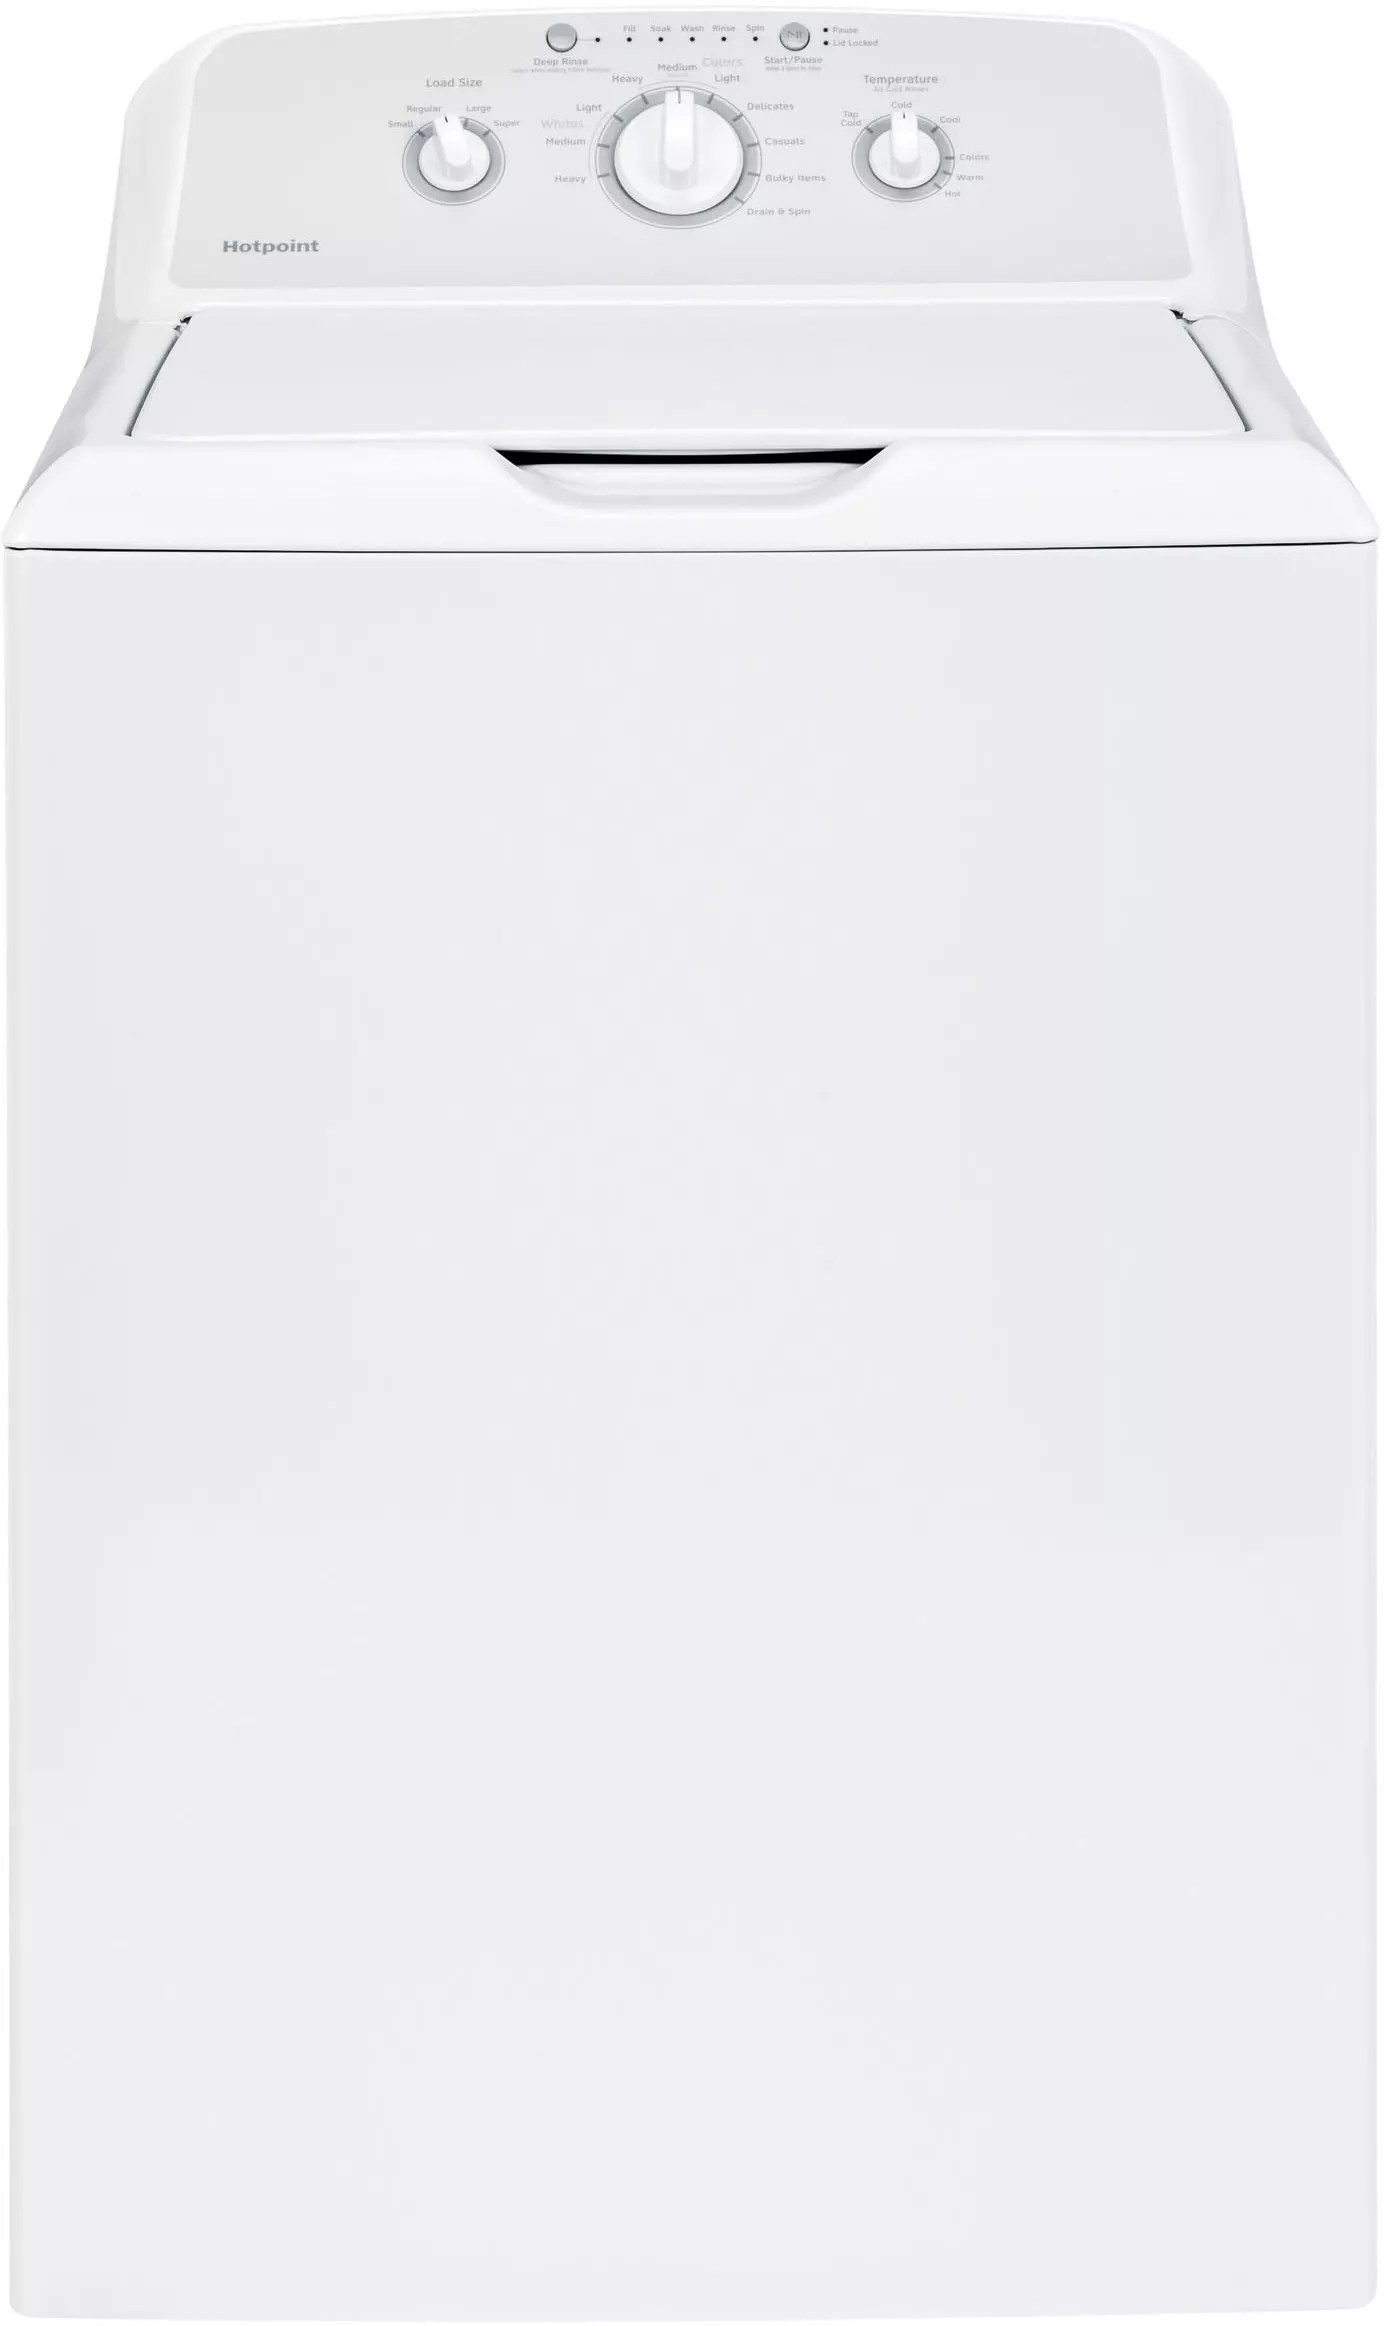 Hotpoint Htx24gaskws 27 Inch Gas Dryer With 6 2 Cu Ft